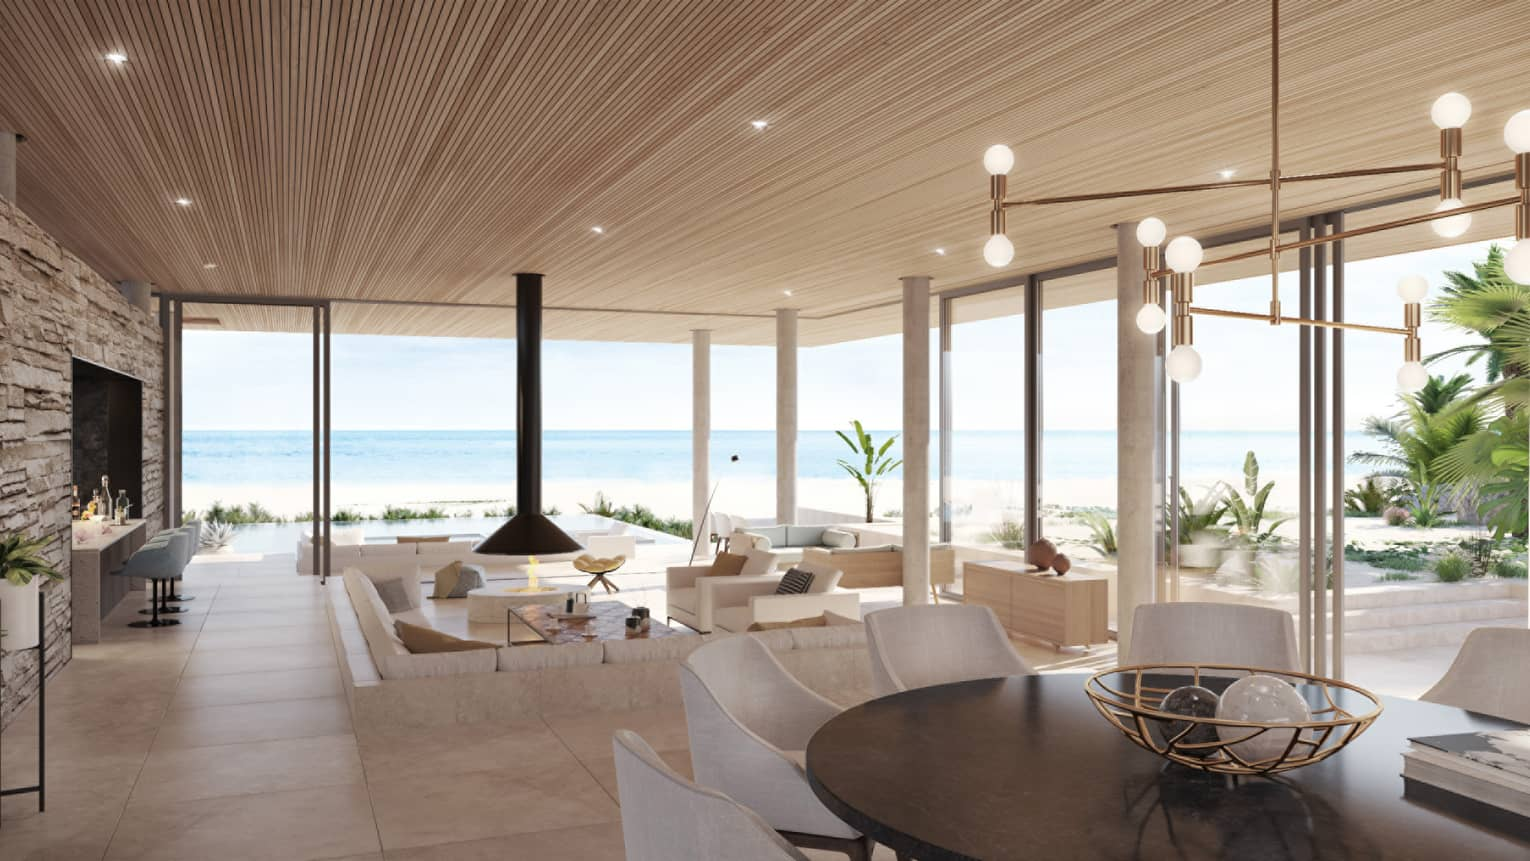 Bright, modern living room with tile floors, sunken living room, floor-to-ceiling windows overlooking beach